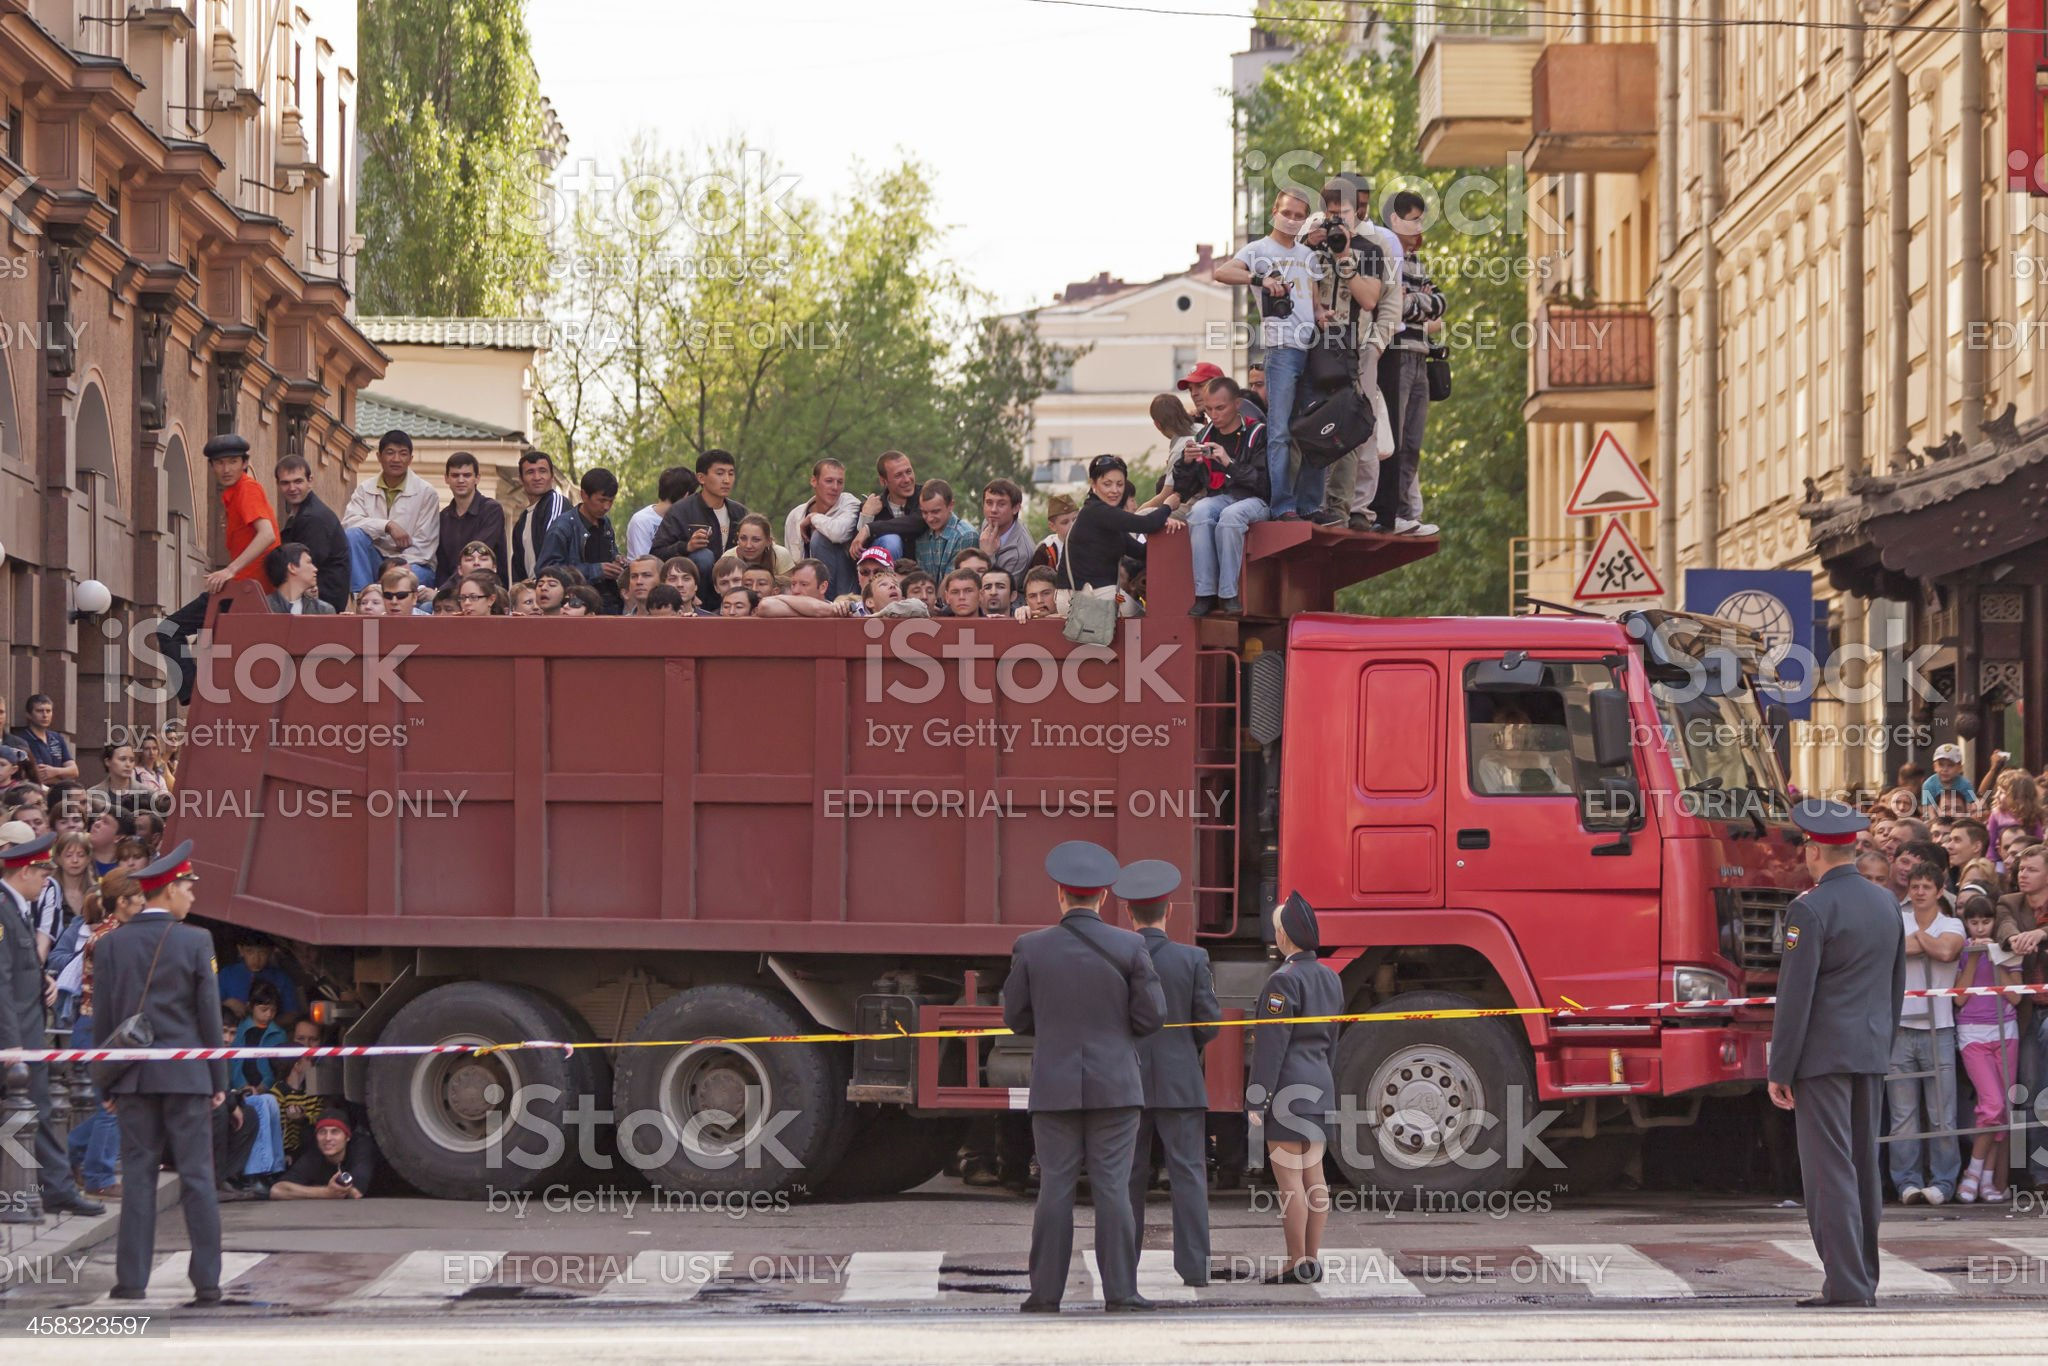 People in dumper body wait for parade beginning on street royalty-free stock photo